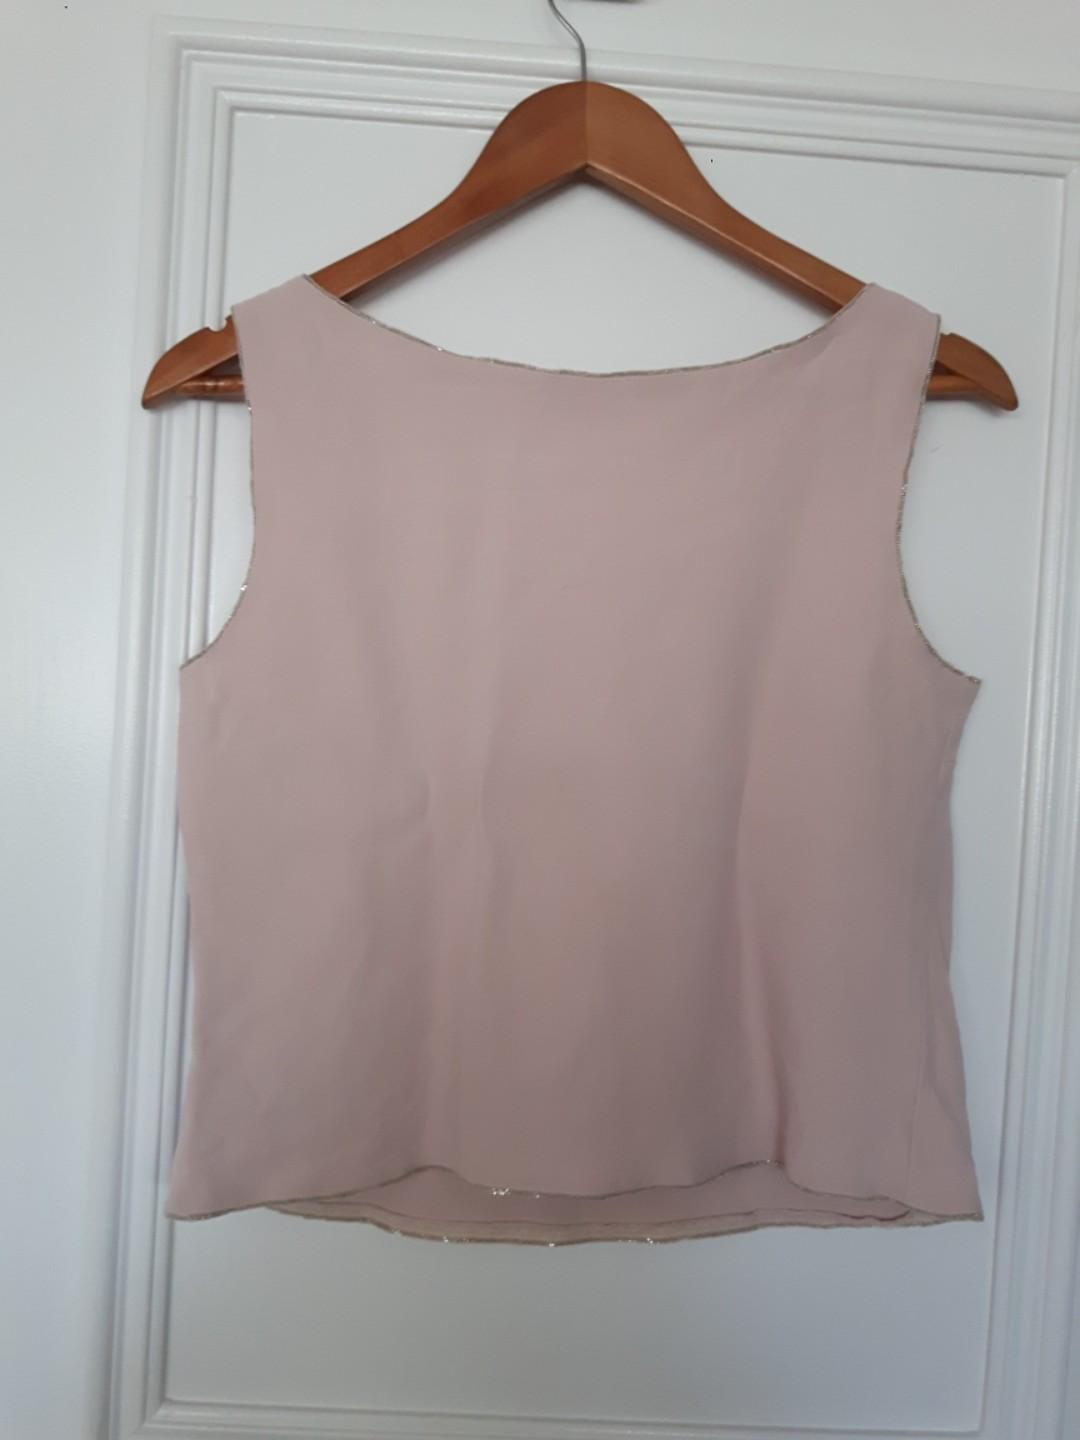 MOSCHINO PASTEL PINK TOP IN SIZE M- SEQUIN EMBROIDERY OUTLINE, MEDIUM CROP